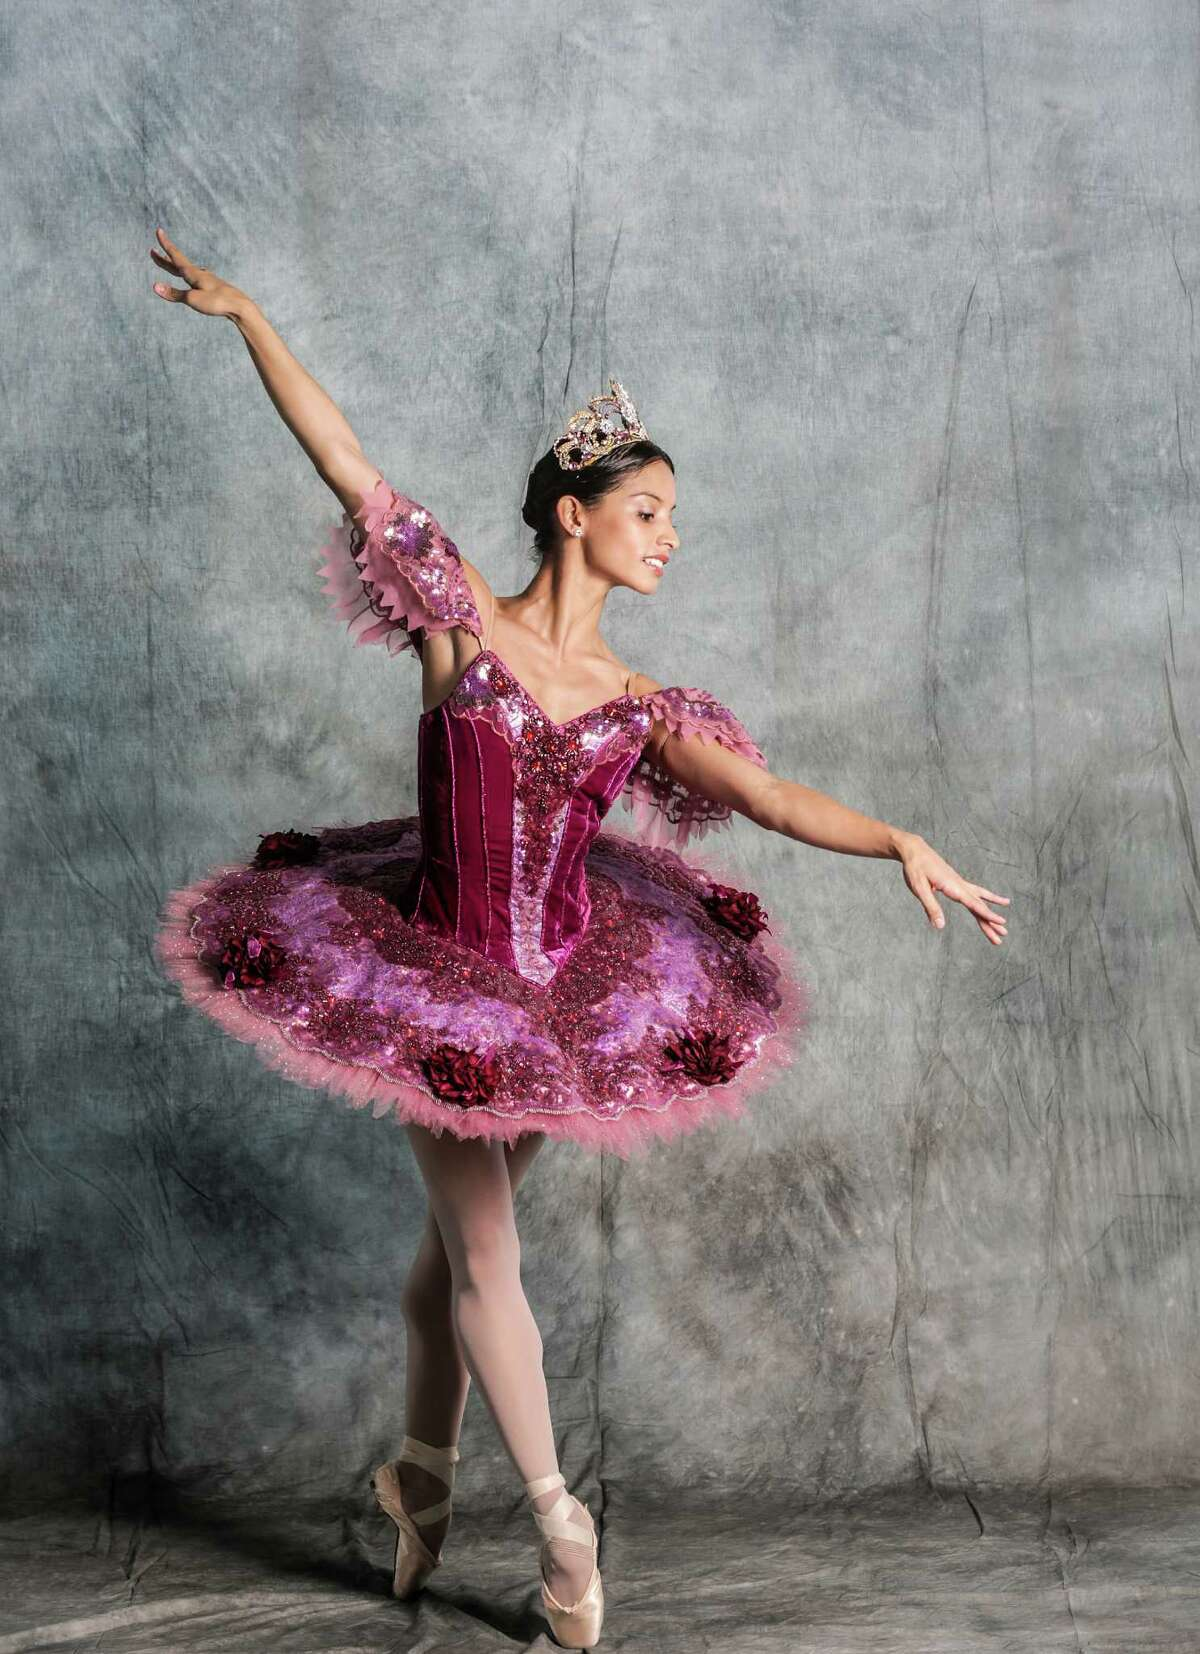 Houston Ballet principal Karina Gonzalez wearing the 2016 Sugar Plum Fairy costume for the company's production of the Nutcracker on Monday, Oct. 31, 2016, in Houston.